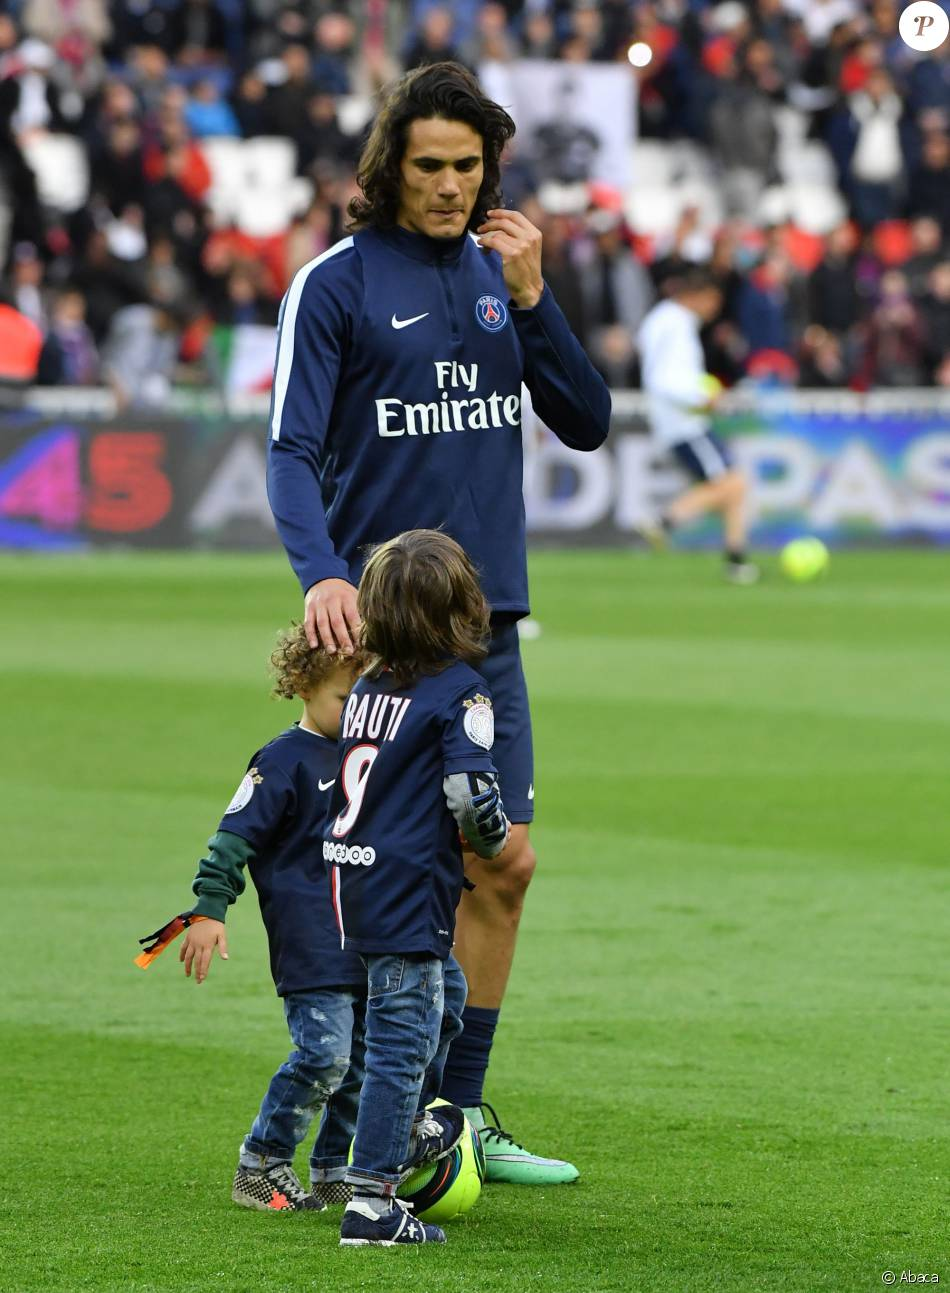 edinson cavani with Edinson Cavani Avec Ses Fils Bautista Et M2296867 on Diego Maradona Paris Saint Germain Striker Kylian Mbappe The Revelation Of Football 1 likewise Edinson Cavani Signs Contract Extension With Psg likewise Edinson Cavani furthermore Neymar Stars Psg Rout Bayern Munich moreover Psg Players Will Earn A Whopping E450k 370k If They Eliminate Chelsea Le Parisien.